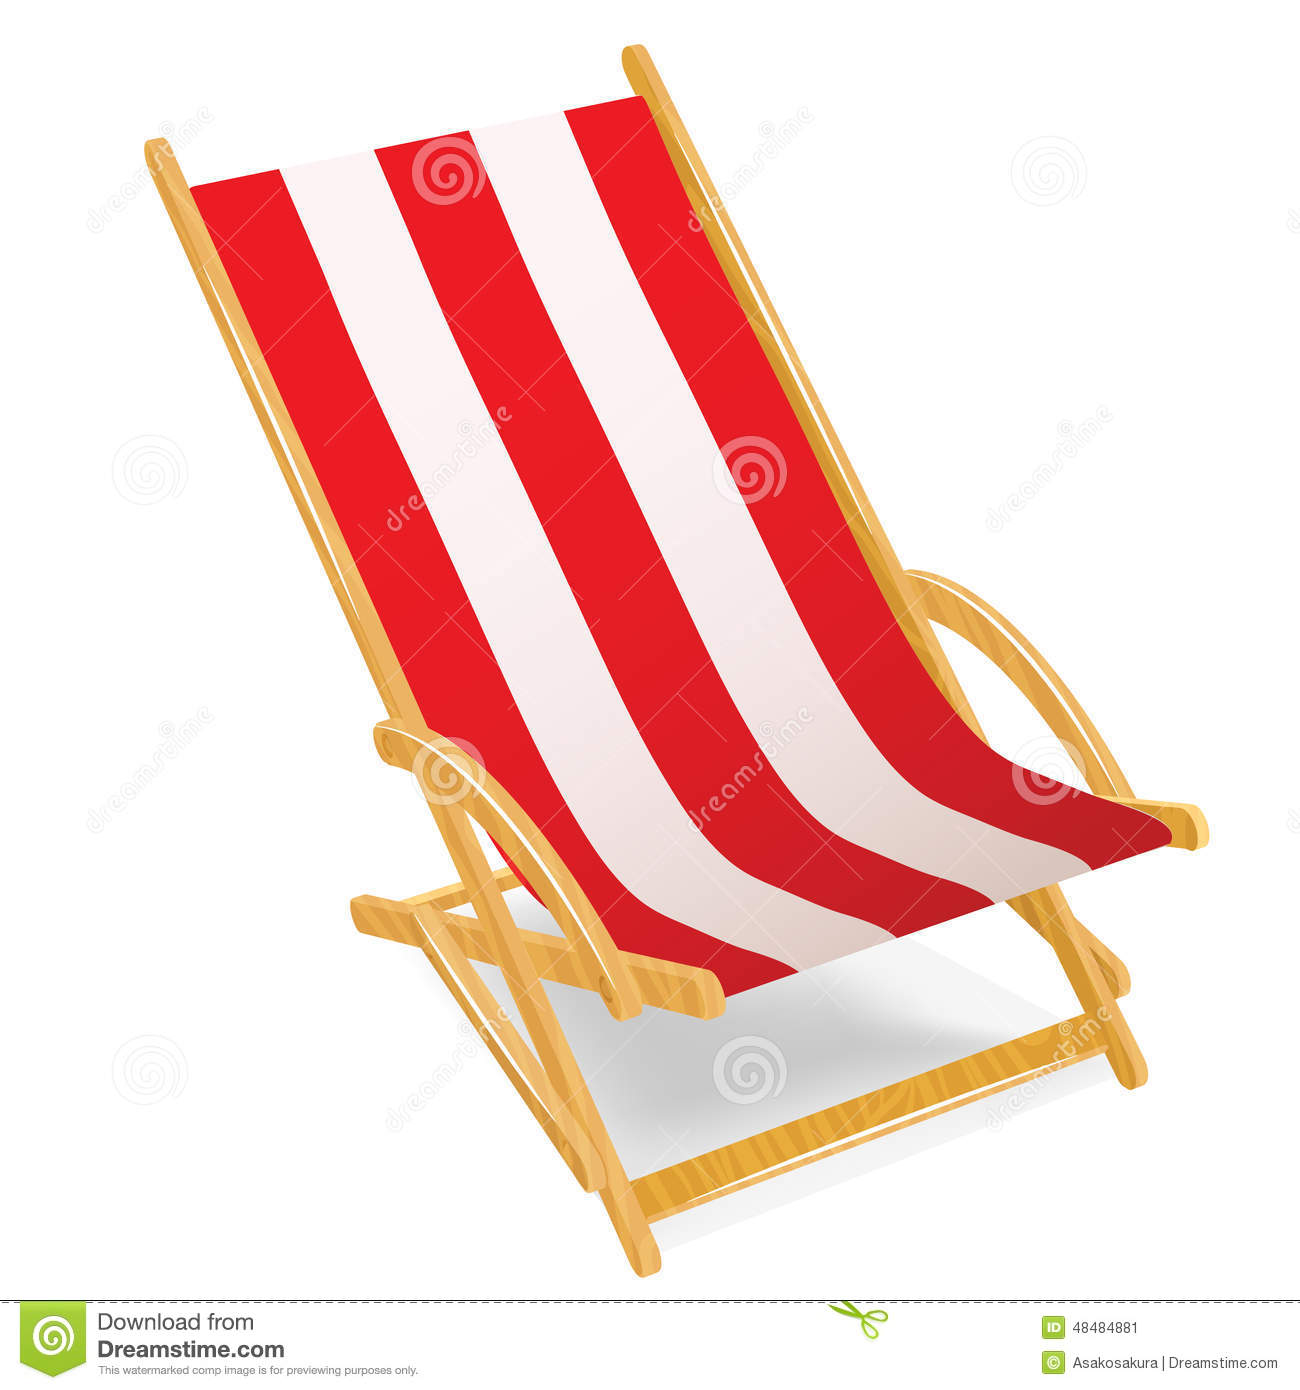 wooden beach chaise longue isolated on white stock vector image 48484881. Black Bedroom Furniture Sets. Home Design Ideas